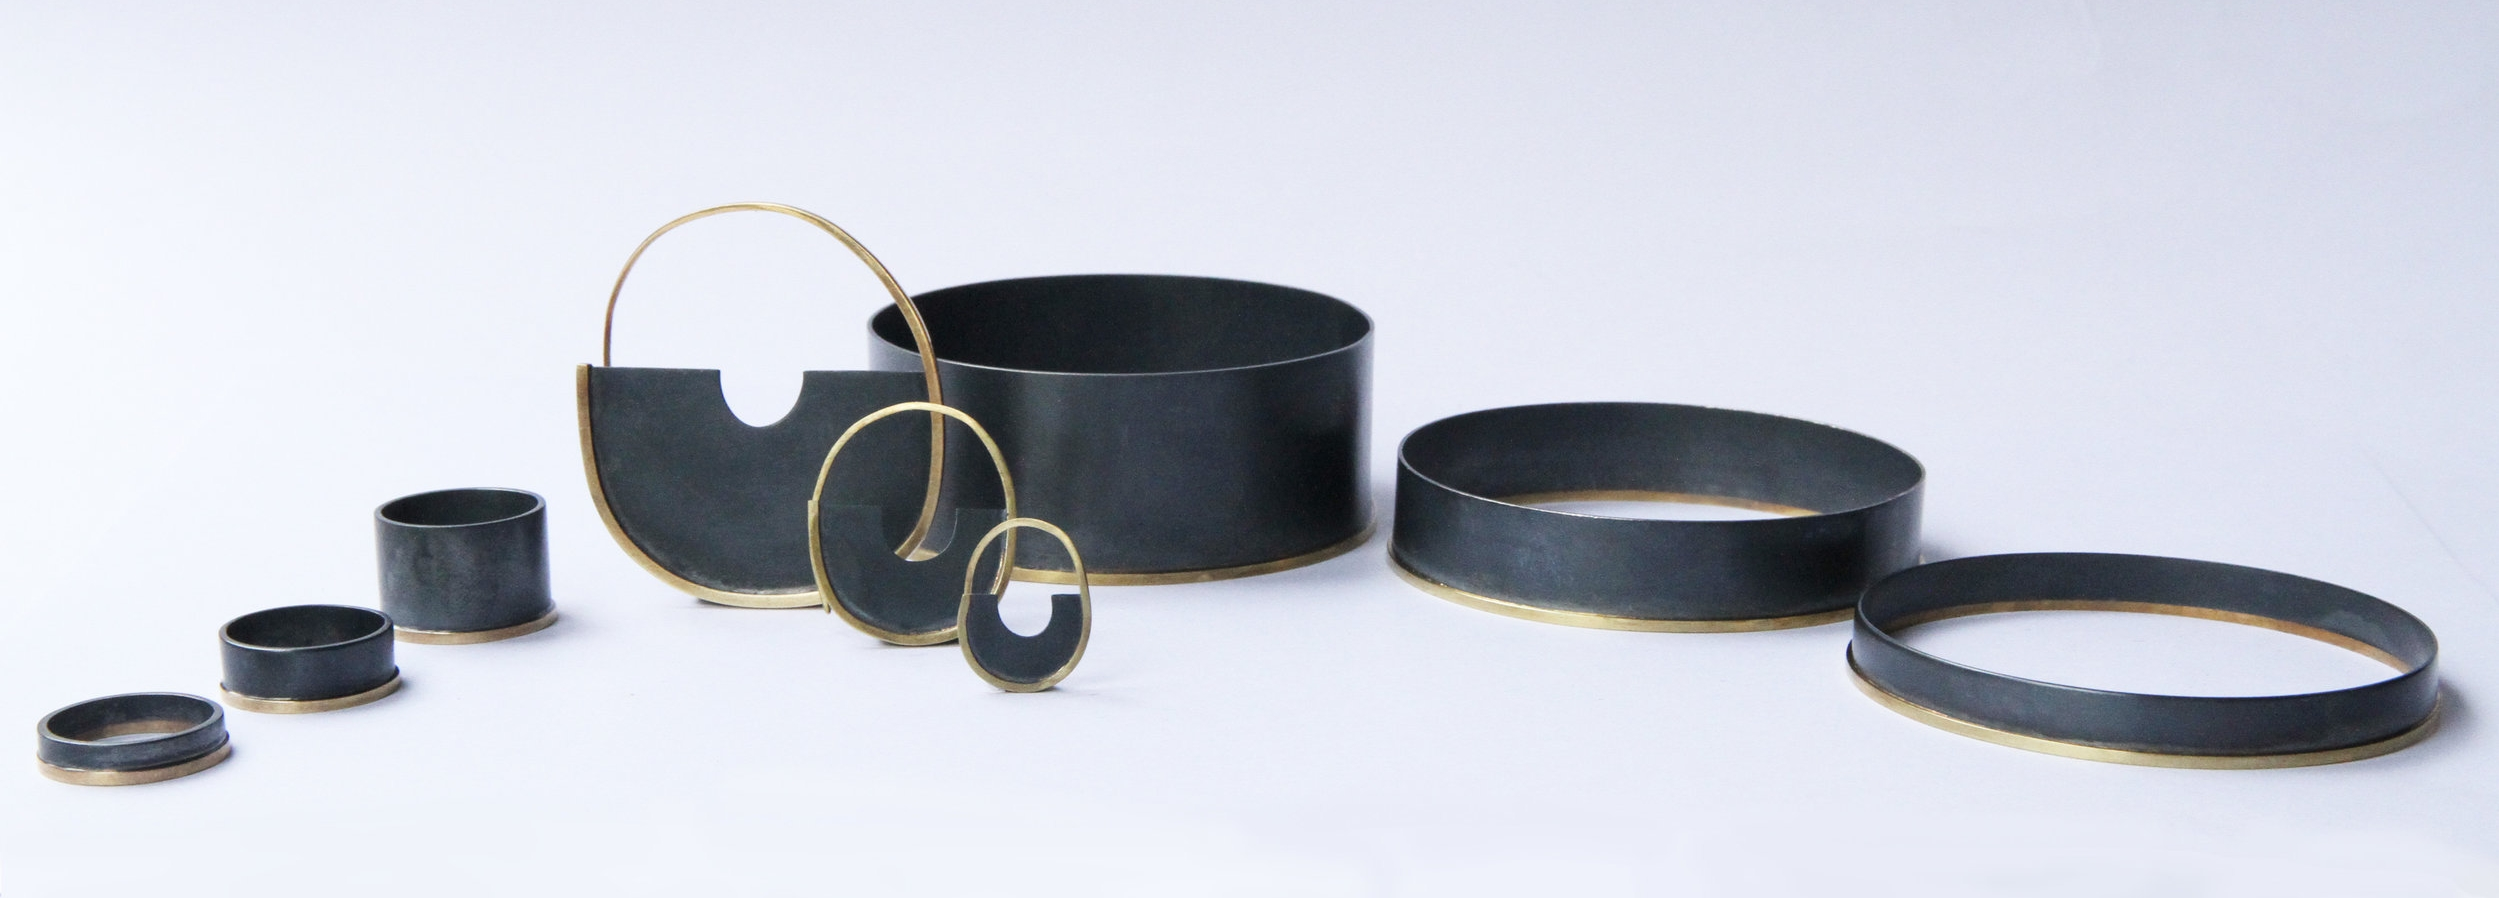 Blackened silver with 18ct gold elements from our  'Antumbra'  collection